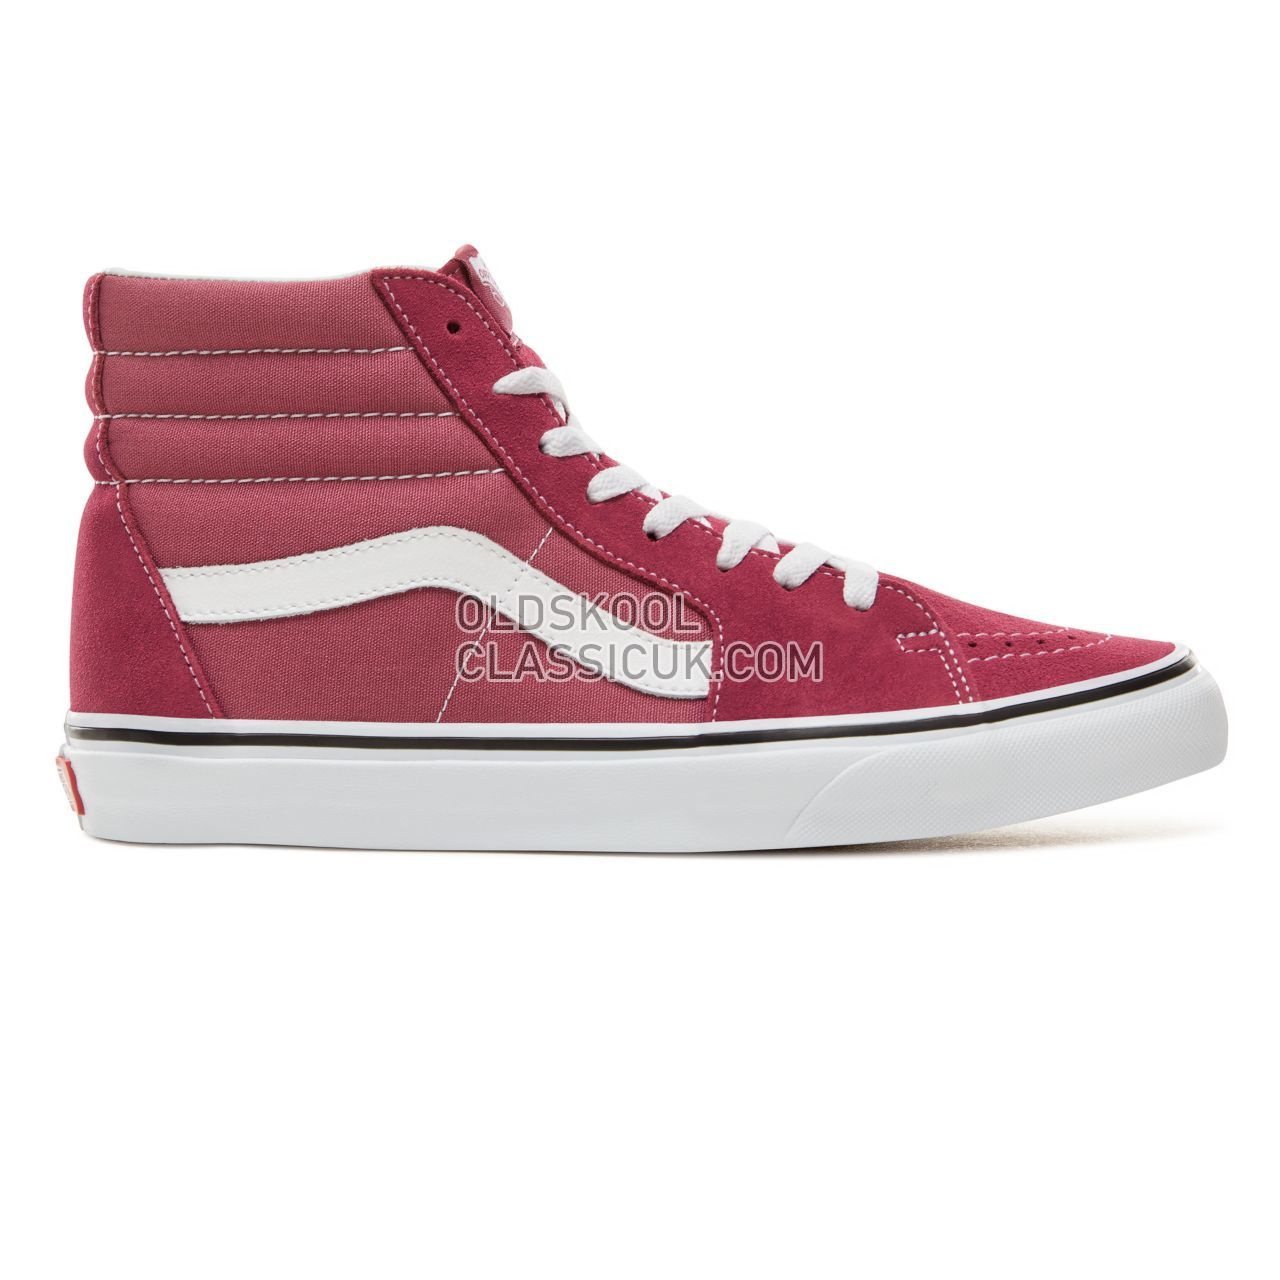 Vans Color Theory Sk8-Hi Sneakers (Unisex) Mens Dry Rose/True White VA38GEU64 Shoes